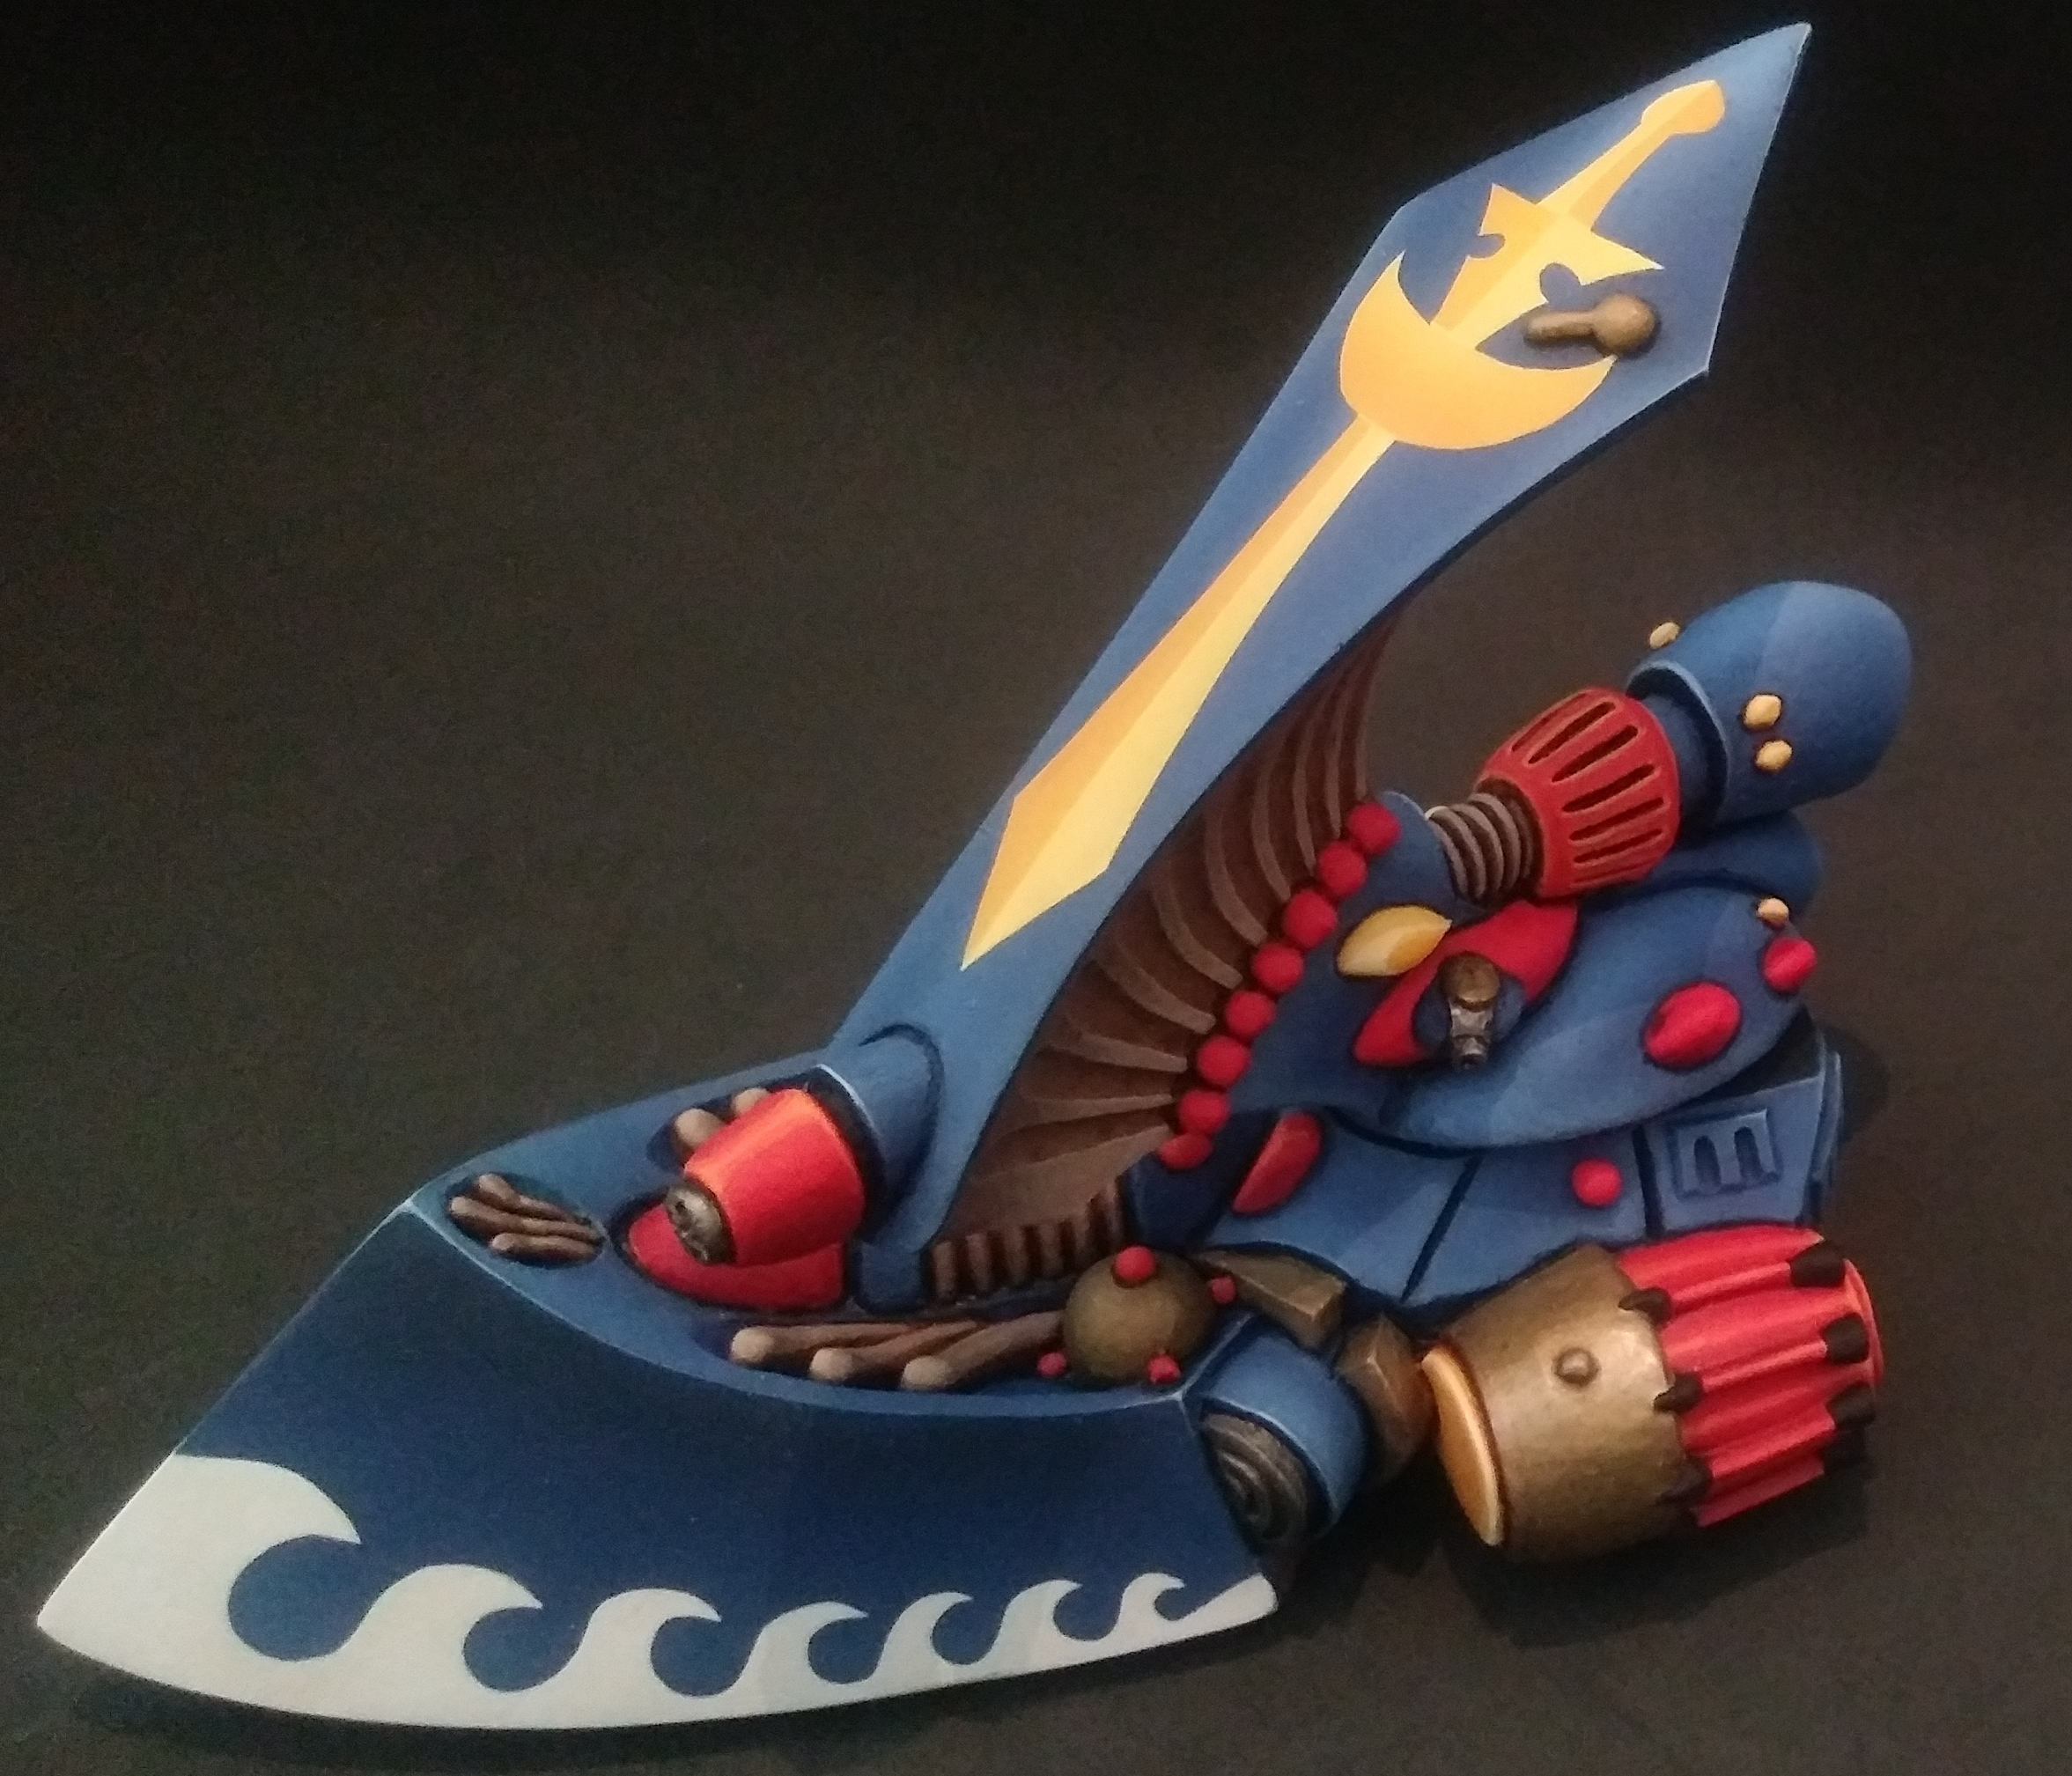 Armorcast Wave serpent